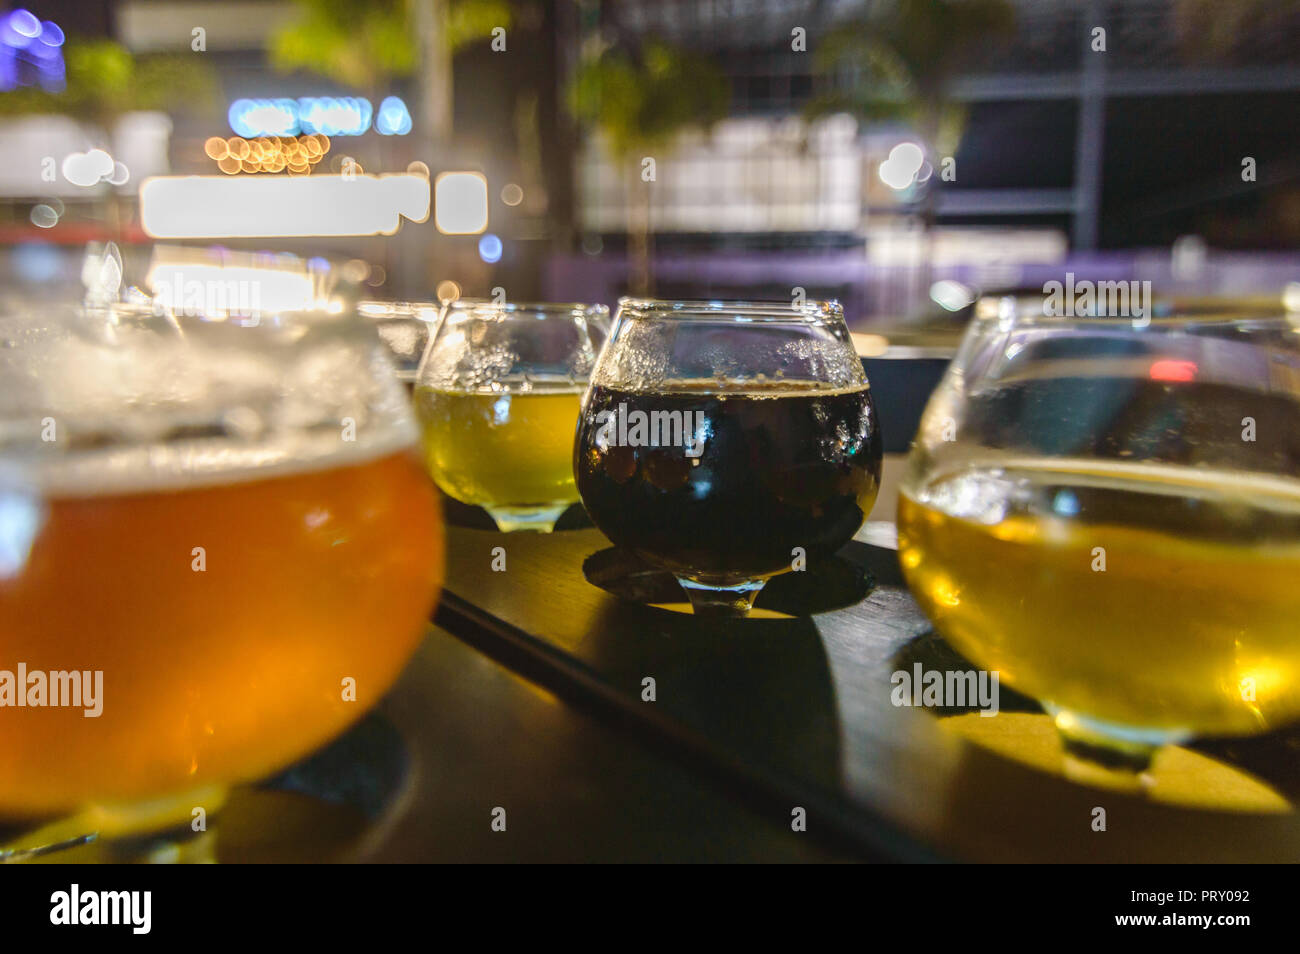 Beer tasting in Tijuana, room for text - Stock Image